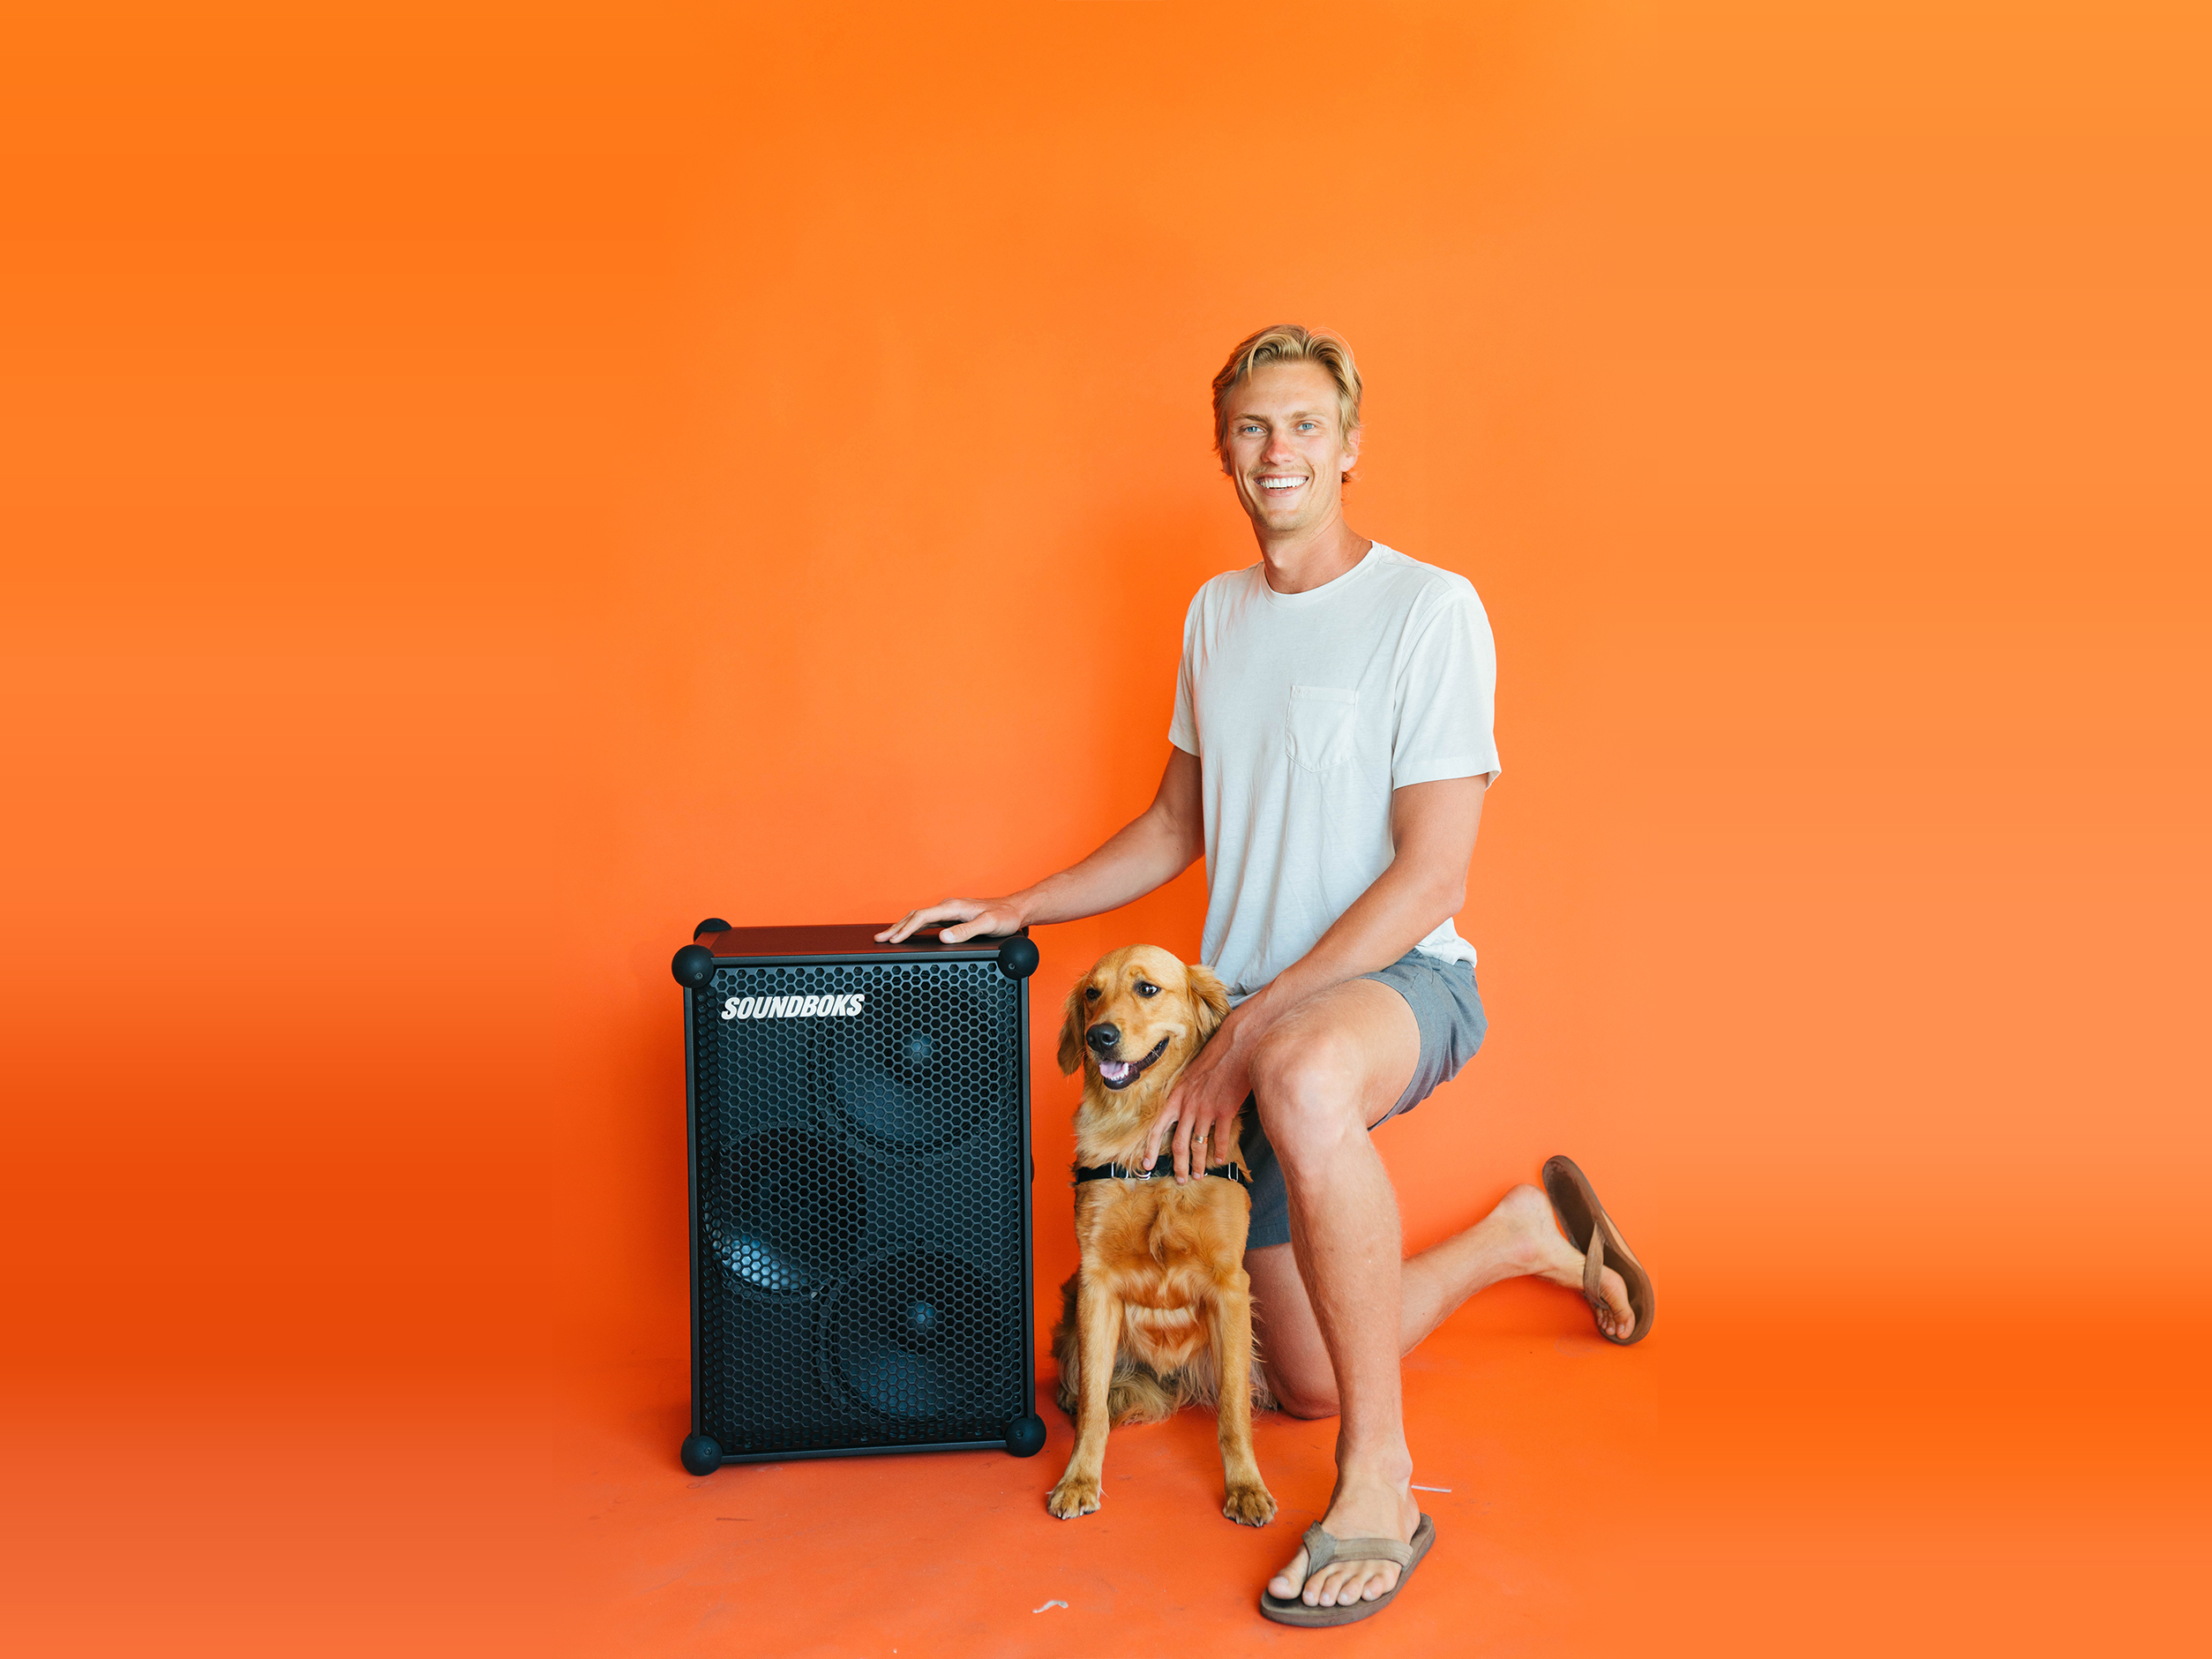 Byron with his dog and a SOUNDBOKS